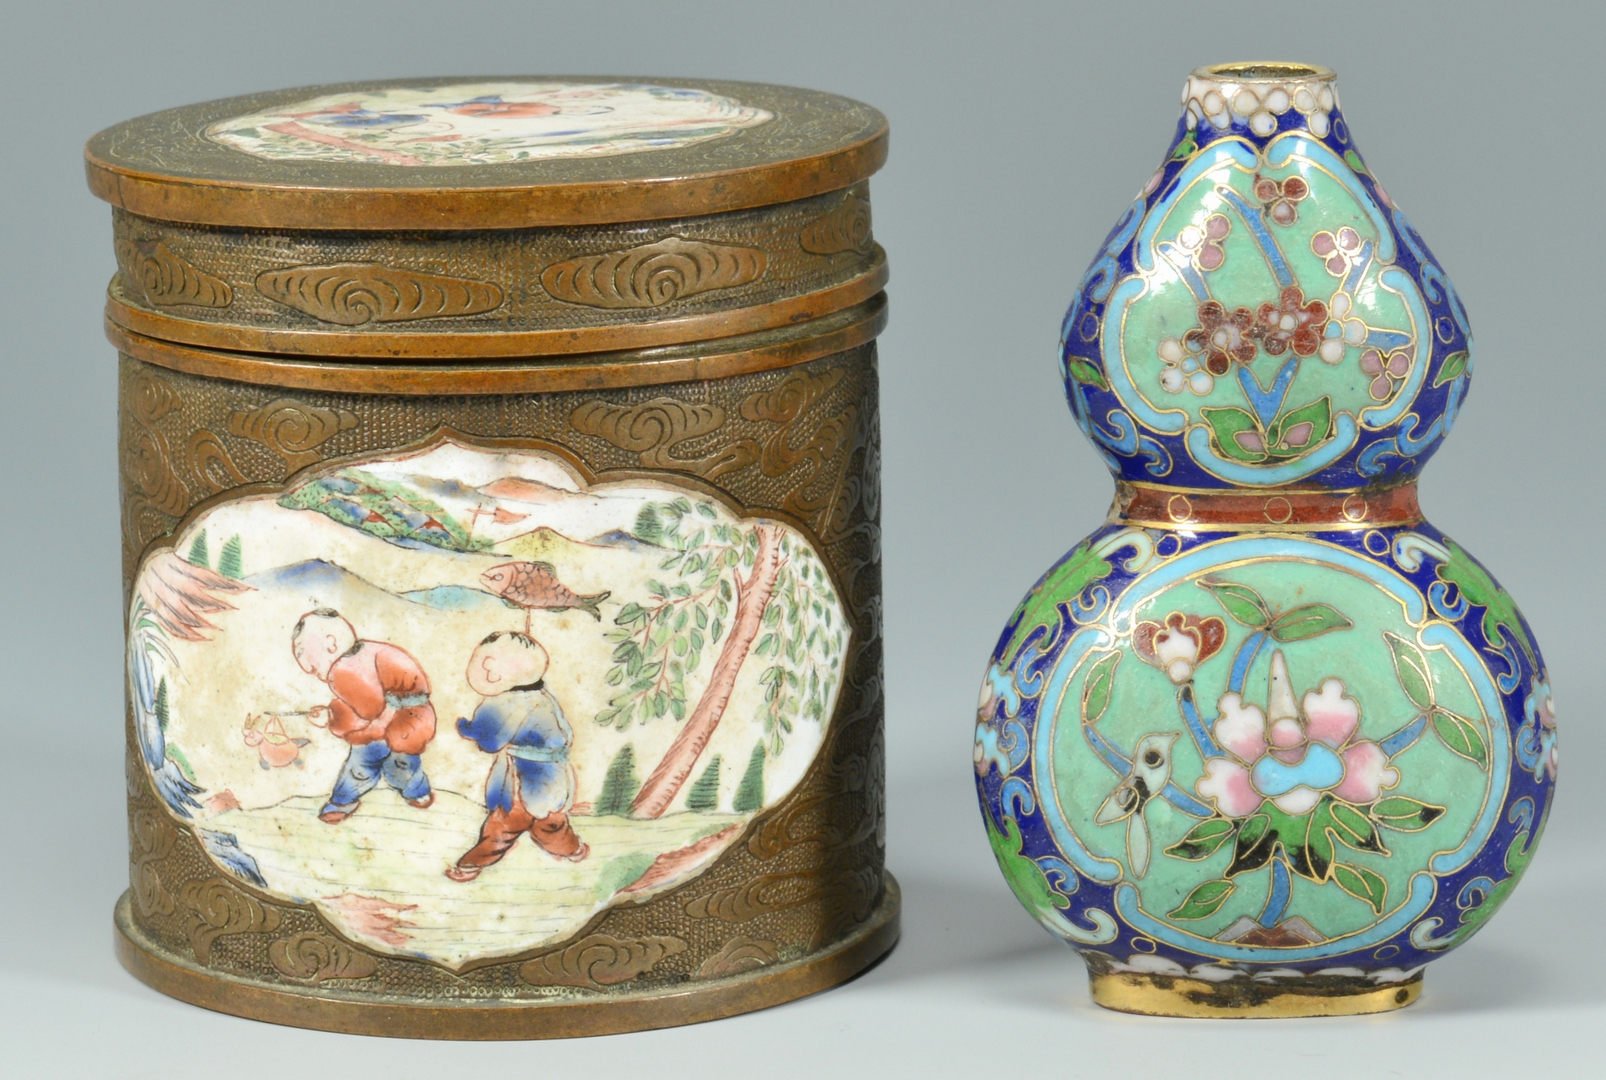 Lot 3088139: 6 Chinese Cloisonne Items